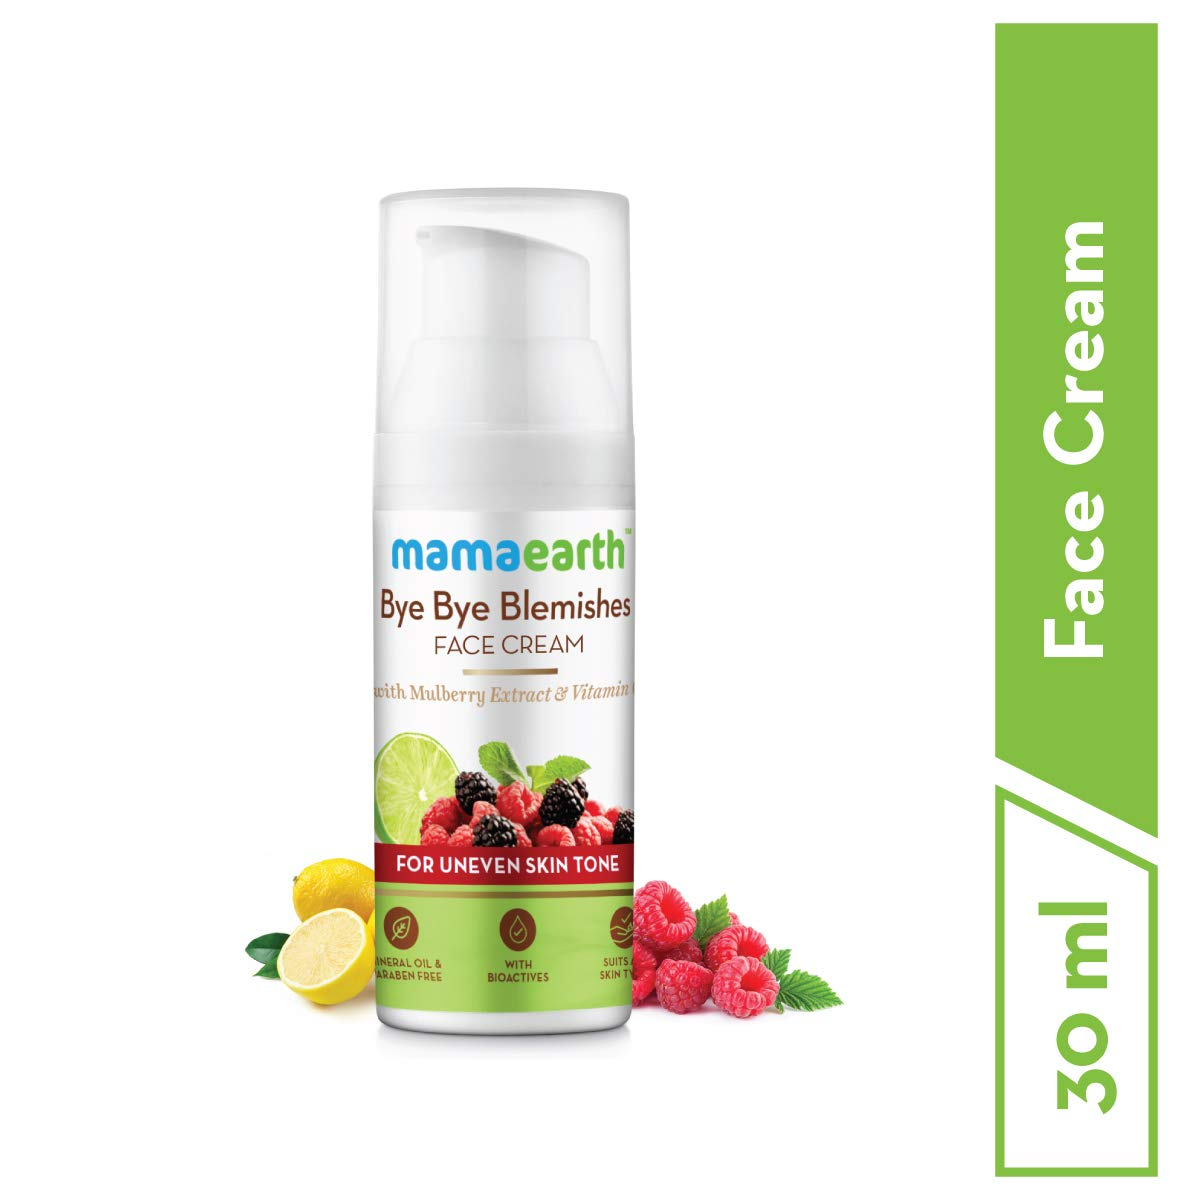 Bye Bye Blemishes Face Cream - With Mulberry Extract & Vitamin C for uneven skin tone